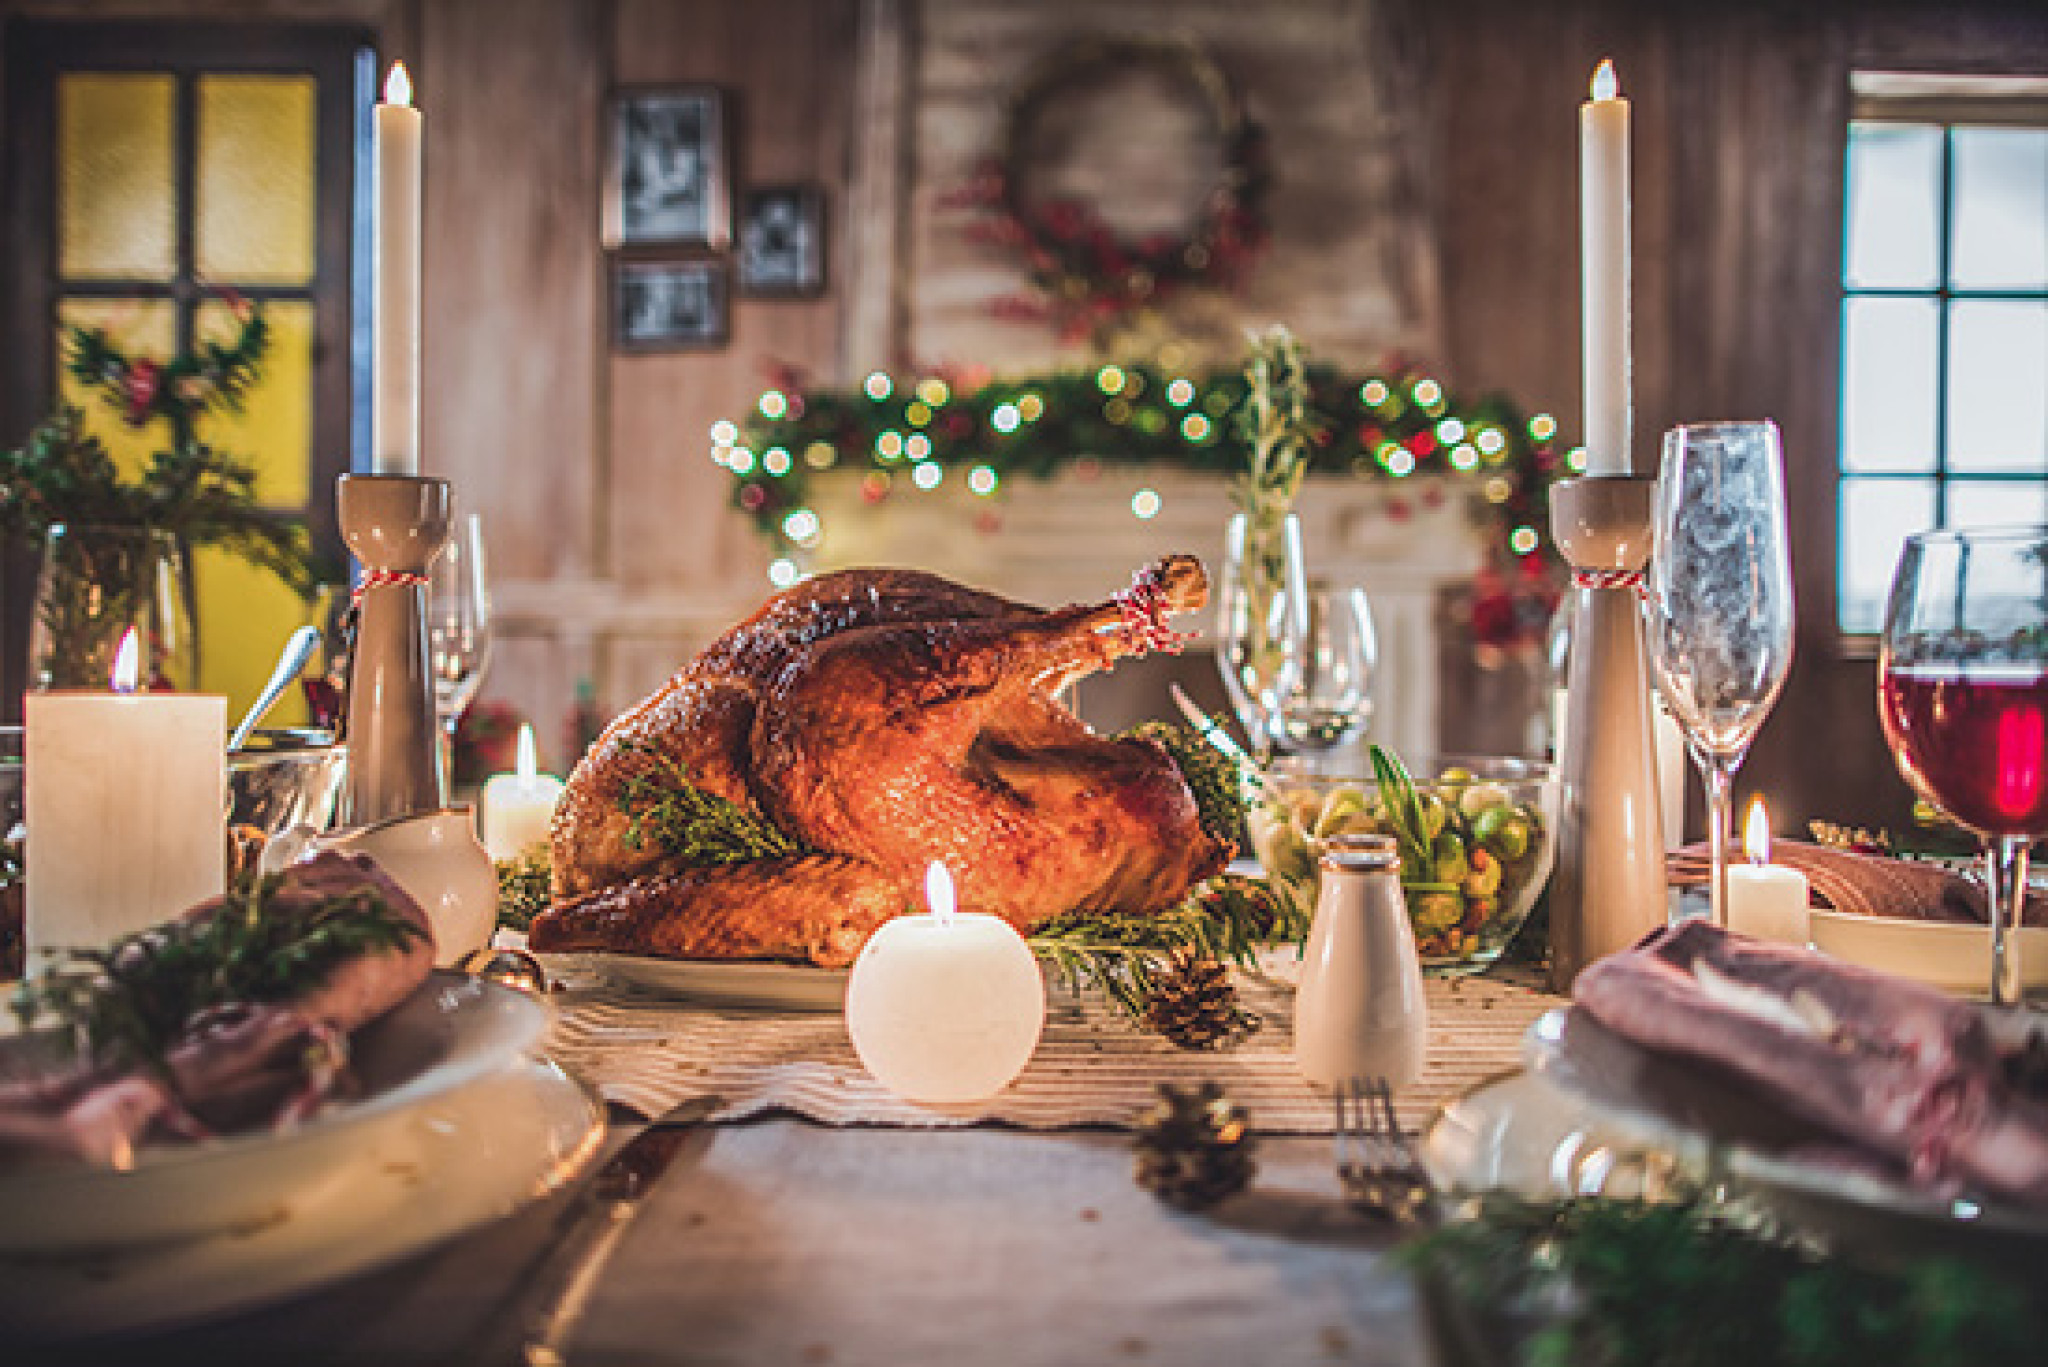 delicious-roasted-turkey-on-served-for-christmas-candle.jpg